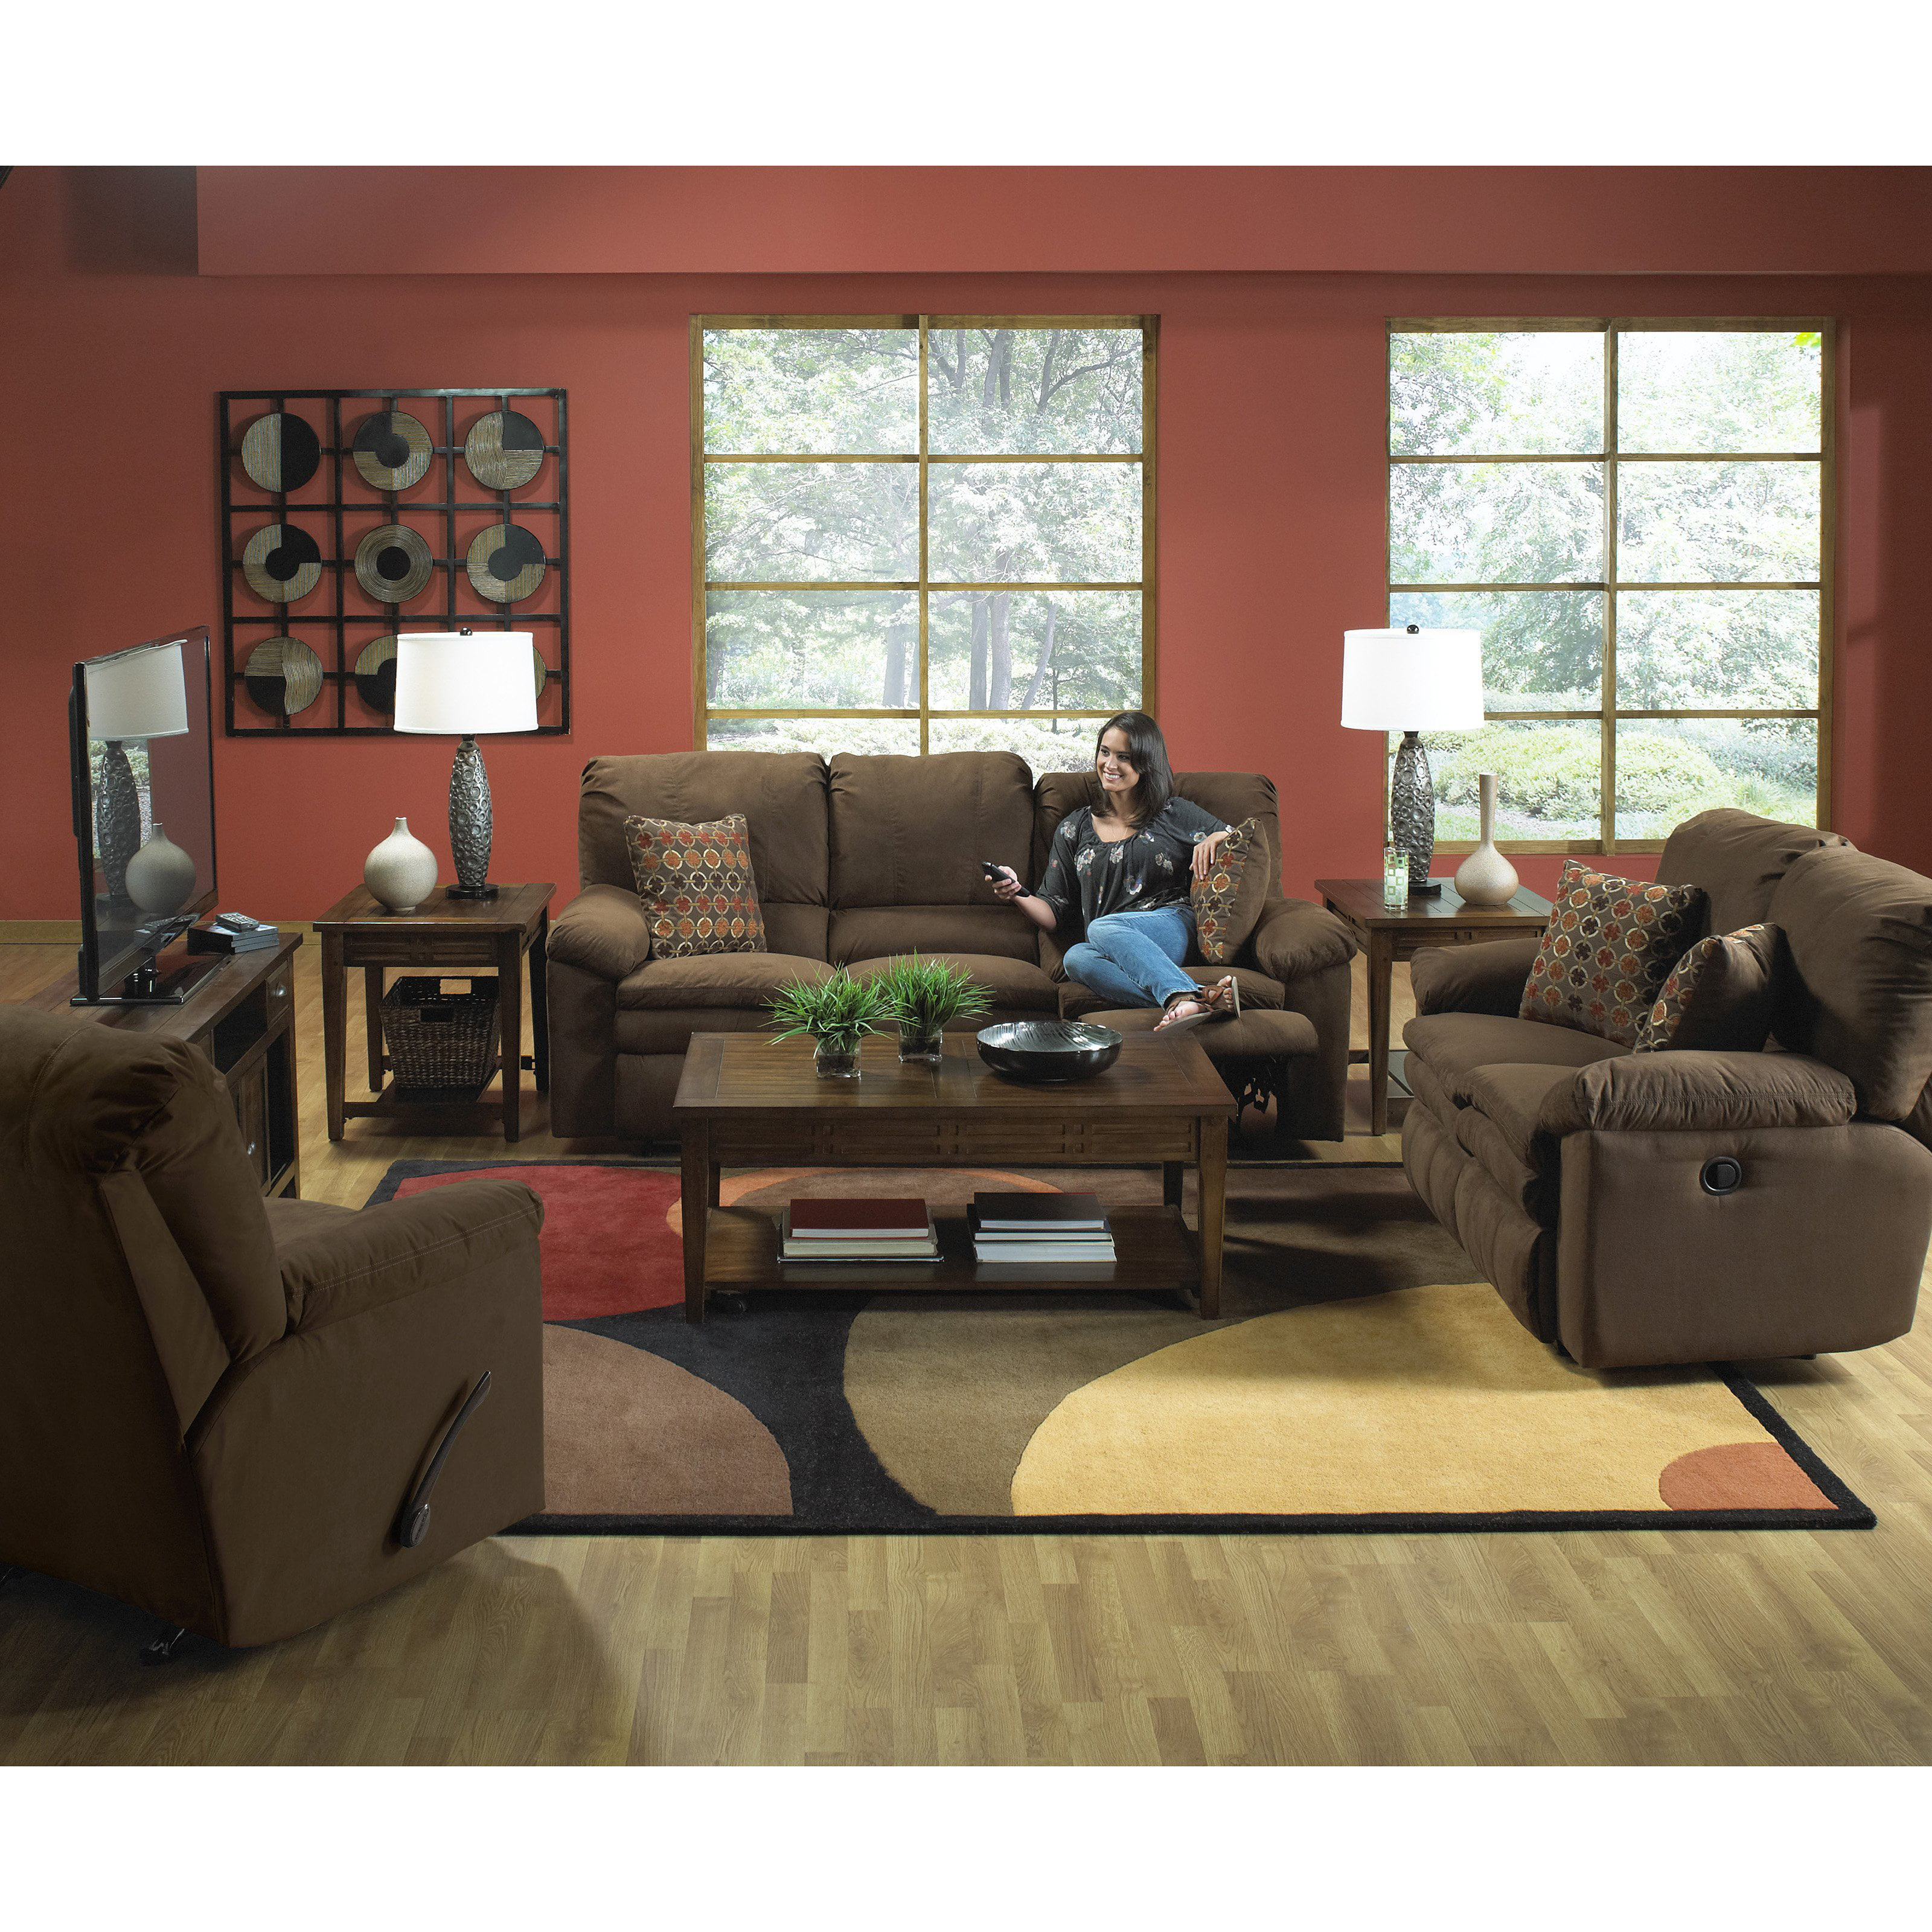 s with company sofa furniture table lindy drop joyner lms collections loveseat reclining catnapper sofas item down